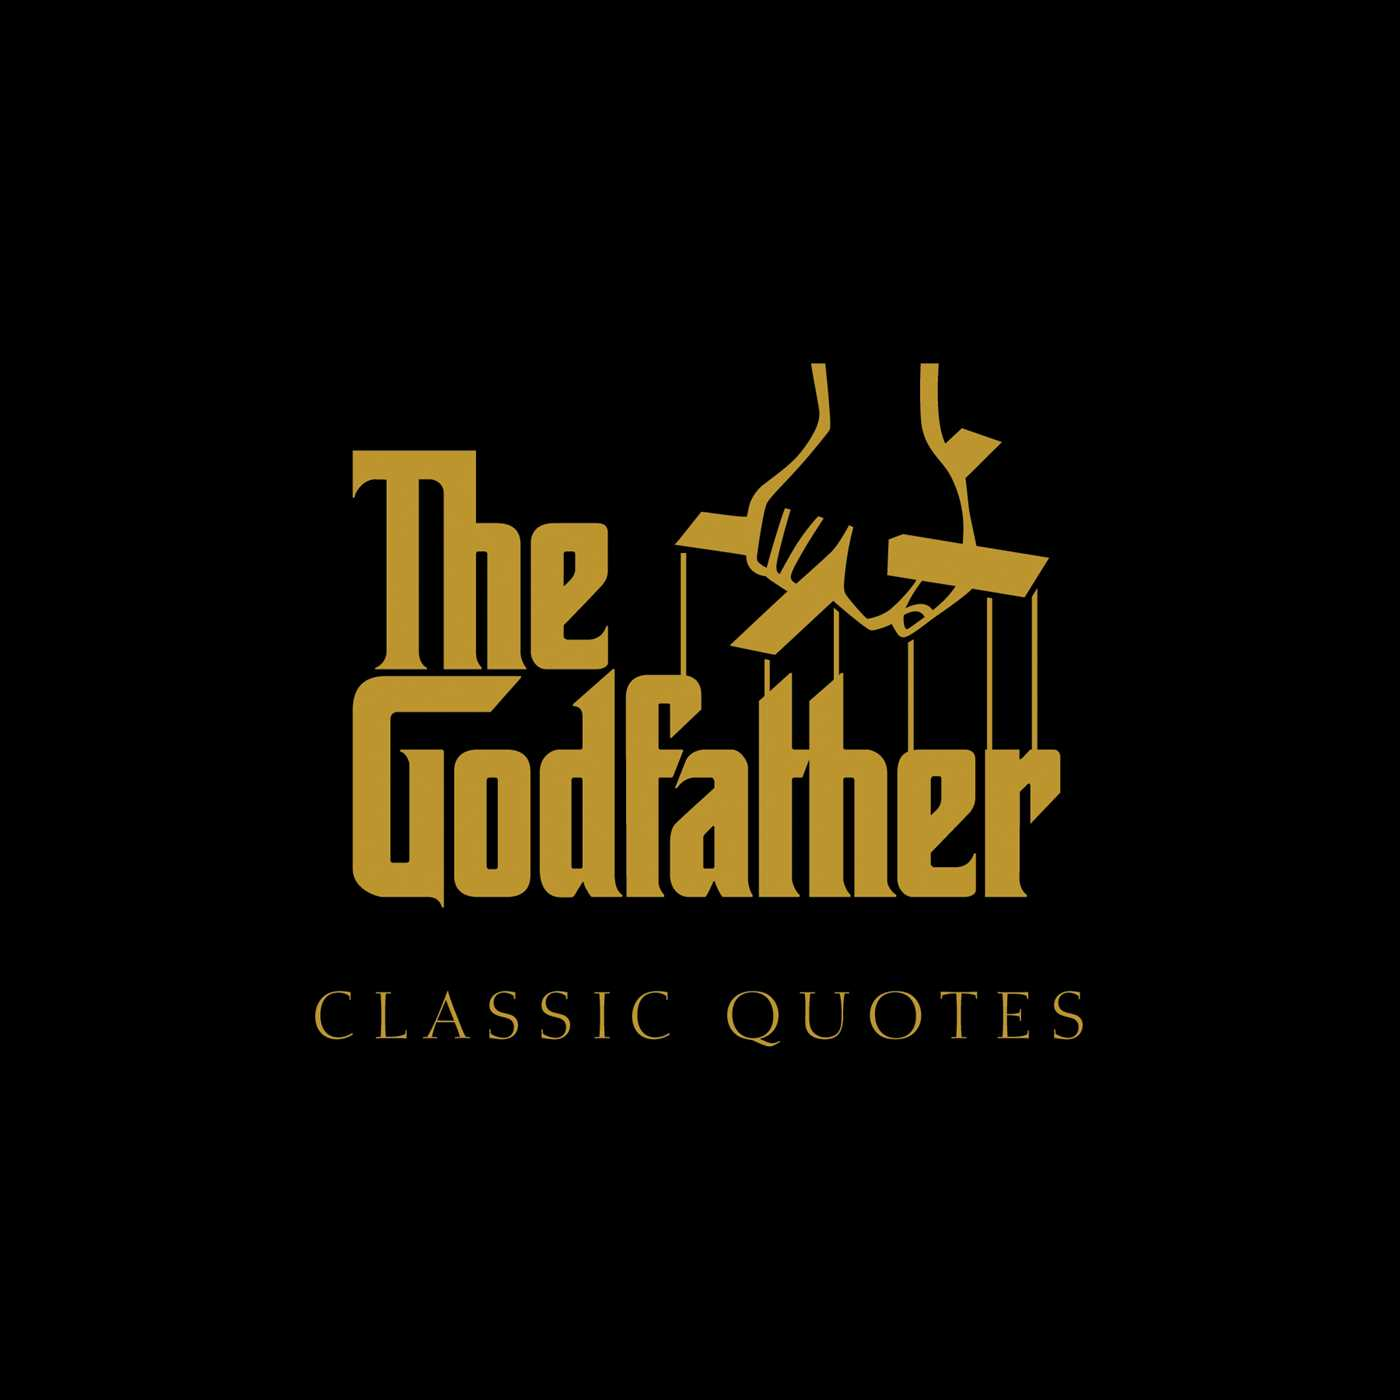 Godfather-classic-quotes-9781604334166_hr